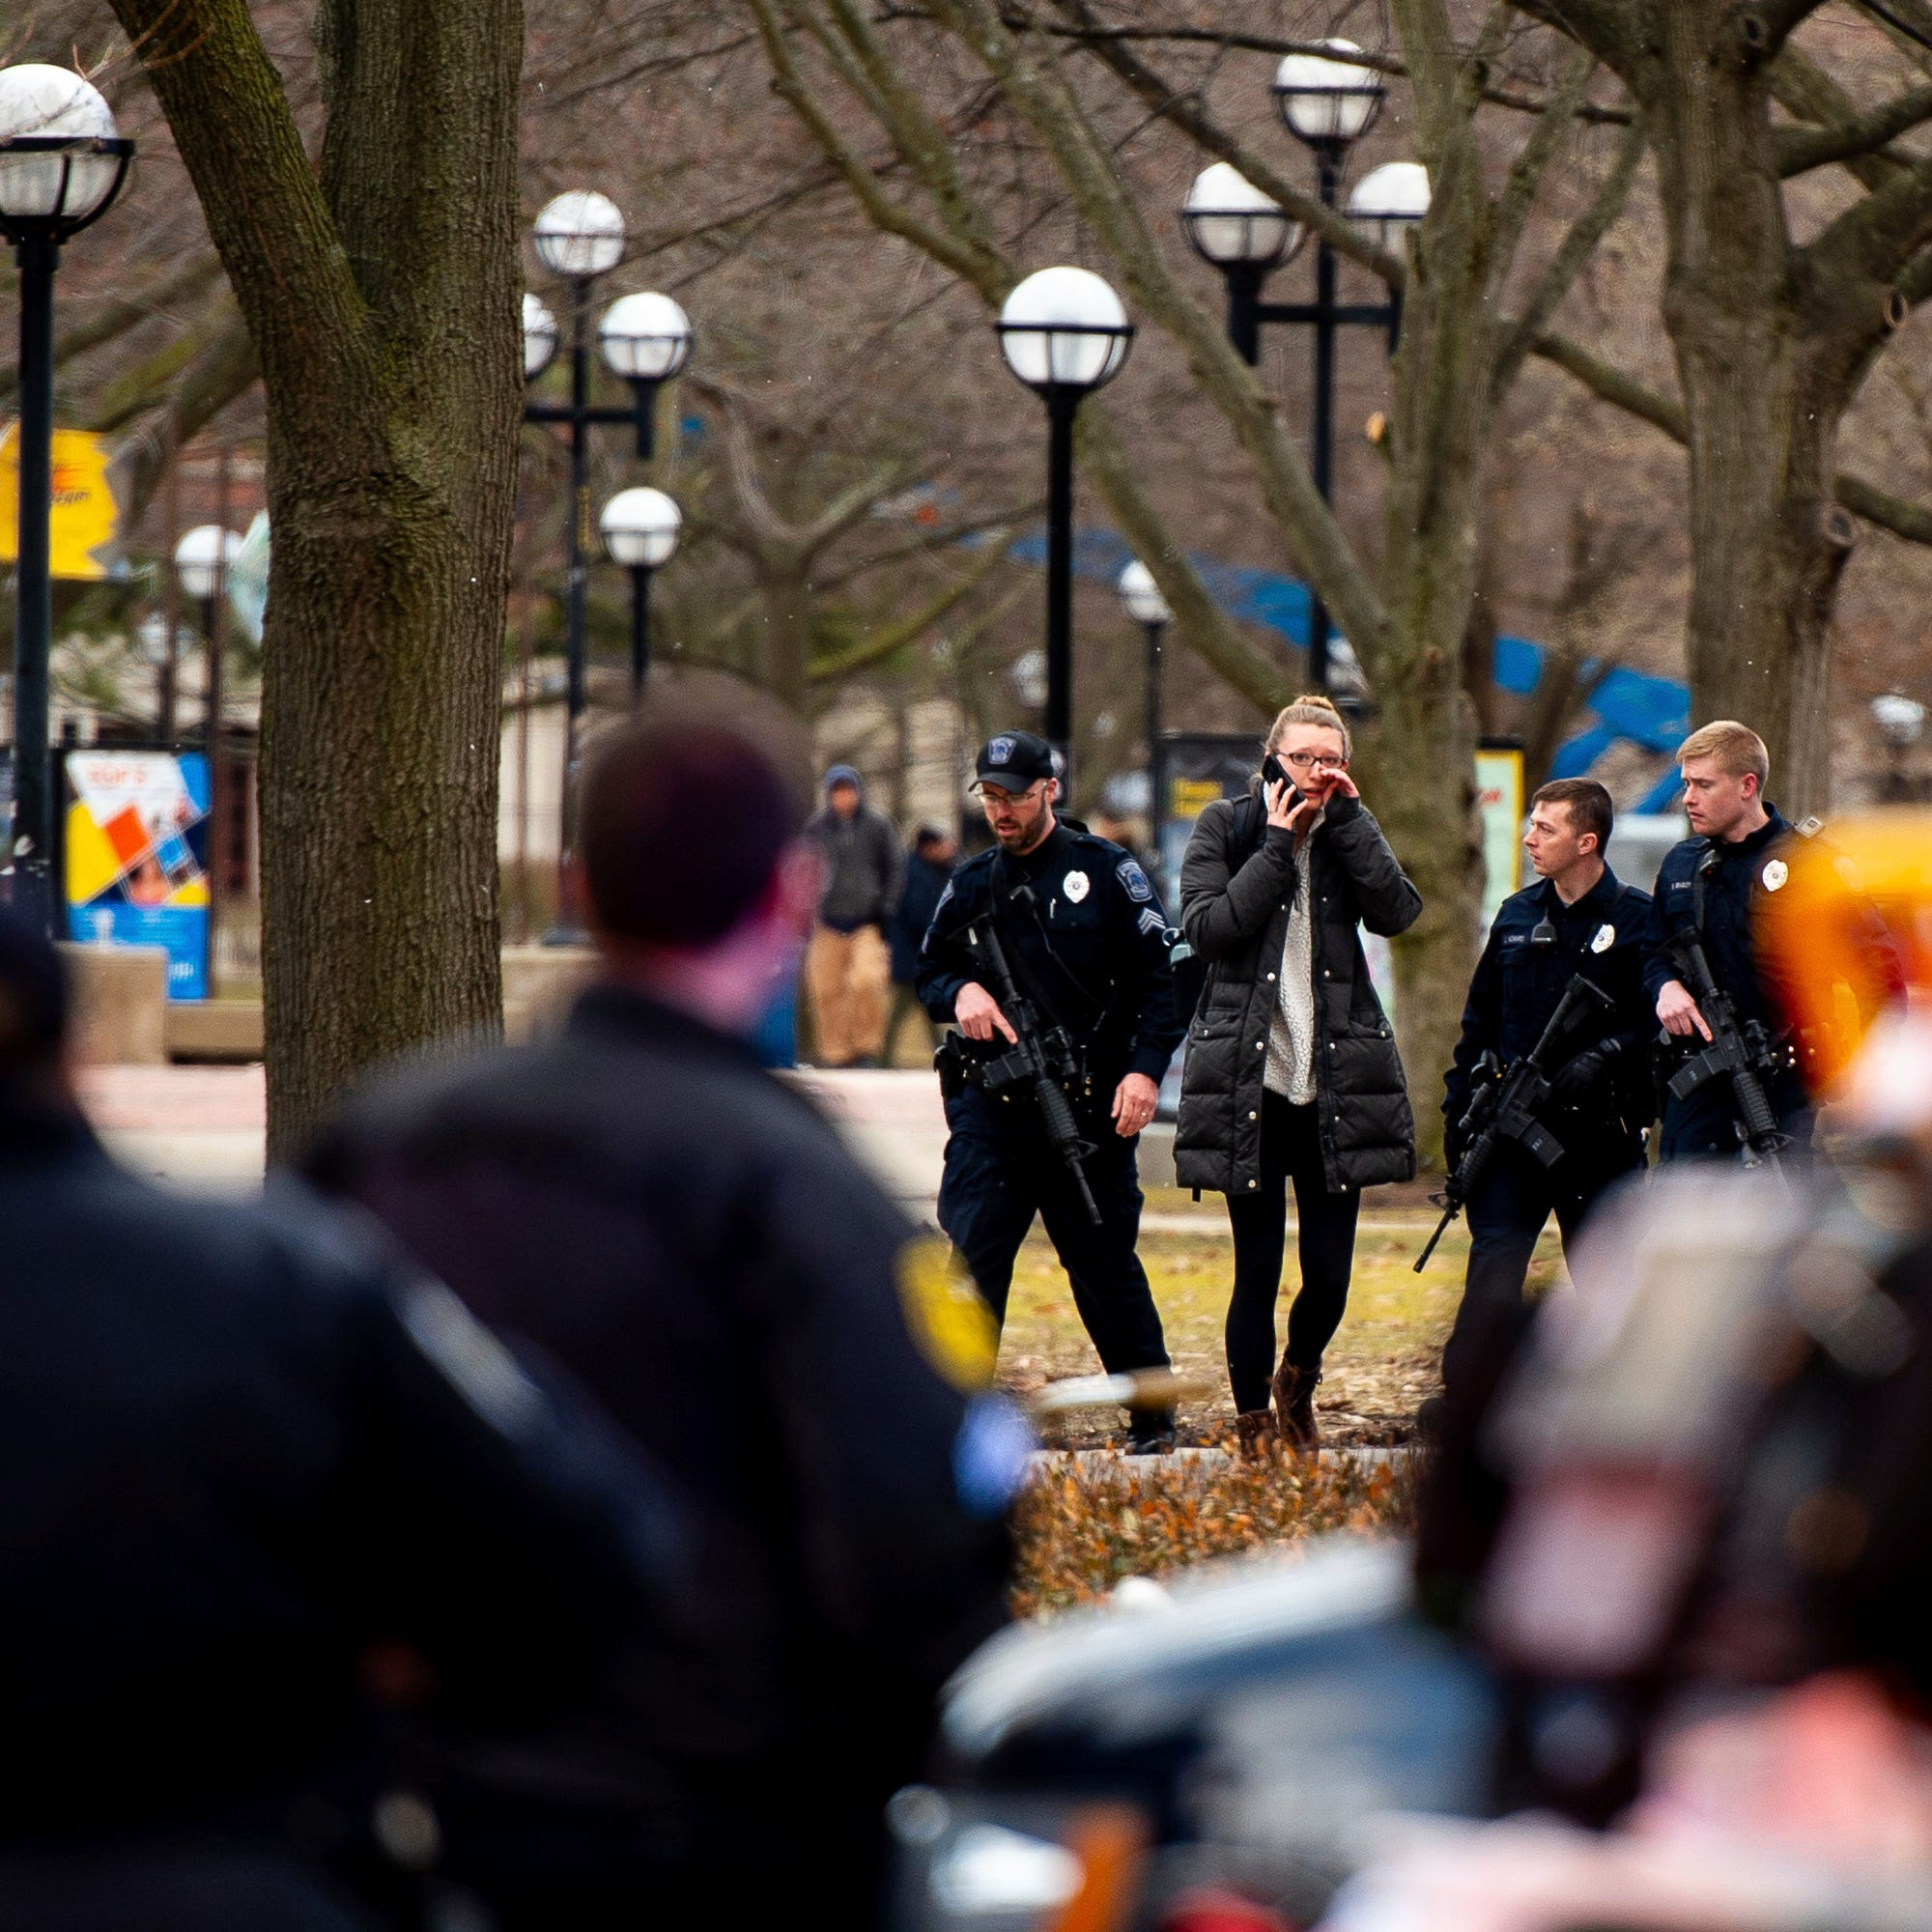 Popping balloons prompt 3 hours of active shooter panic at University of Michigan